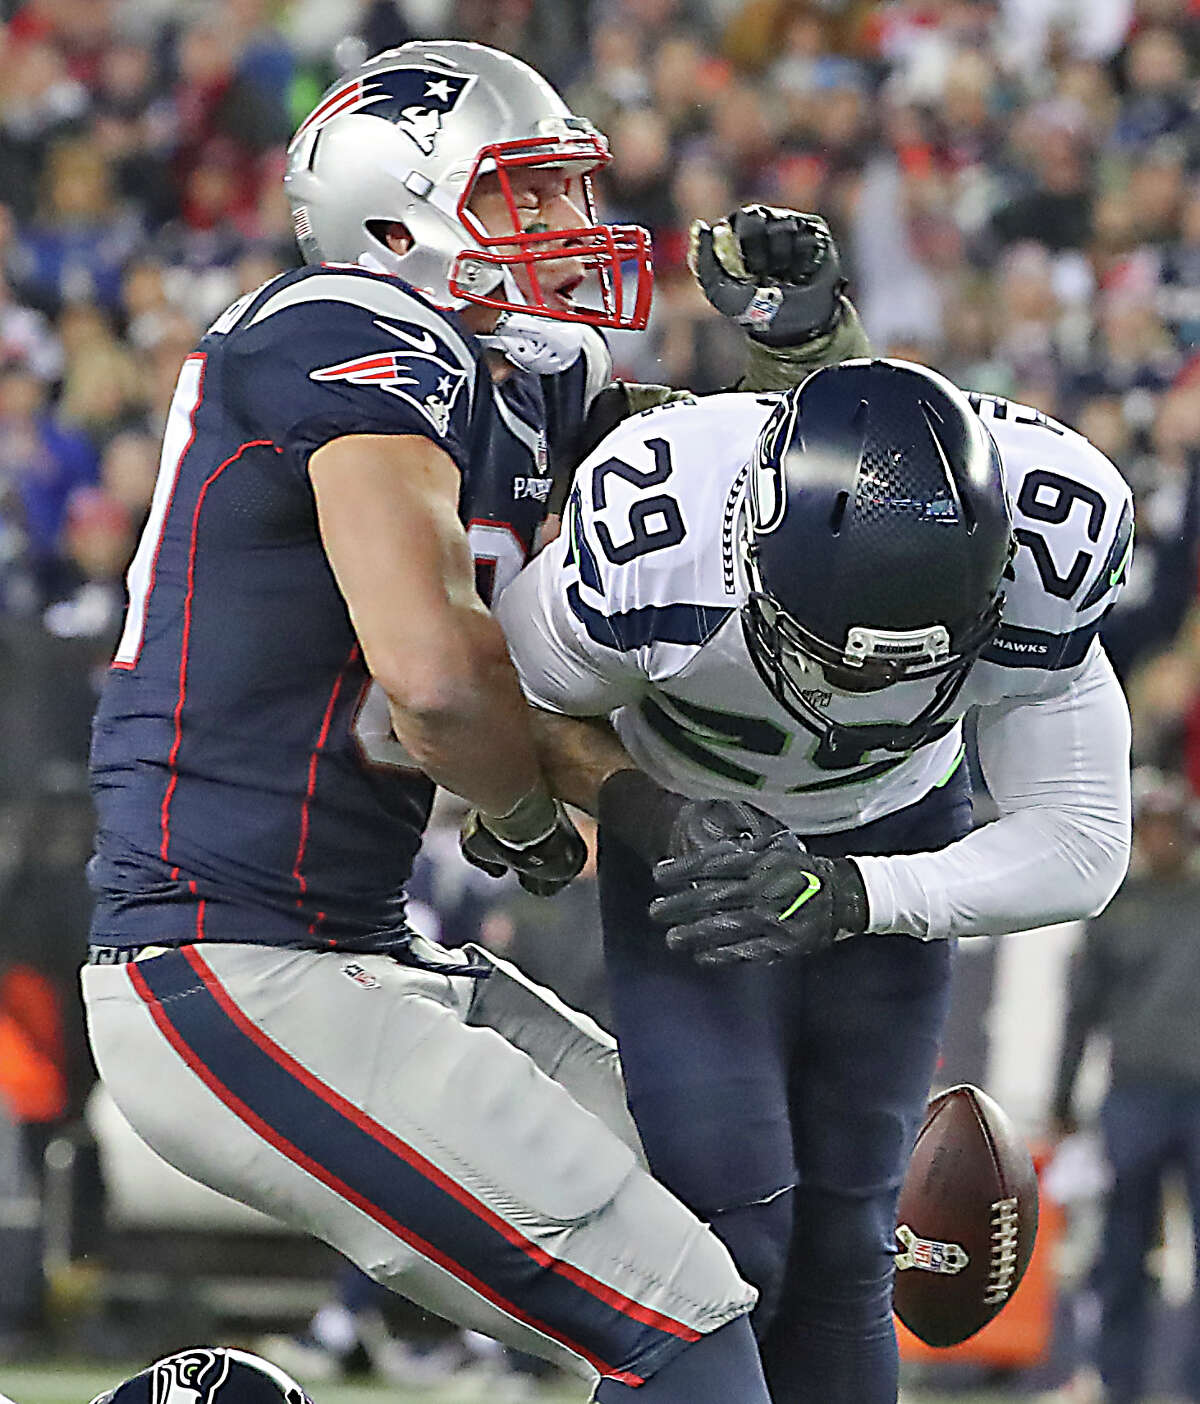 New England Patriots tight end Rob Gronkowski is hit by Seattle Seahawks safety Earl Thomas forcing an incomplete pass during second quarter of the team's matchup on Nov. 13, 2016.